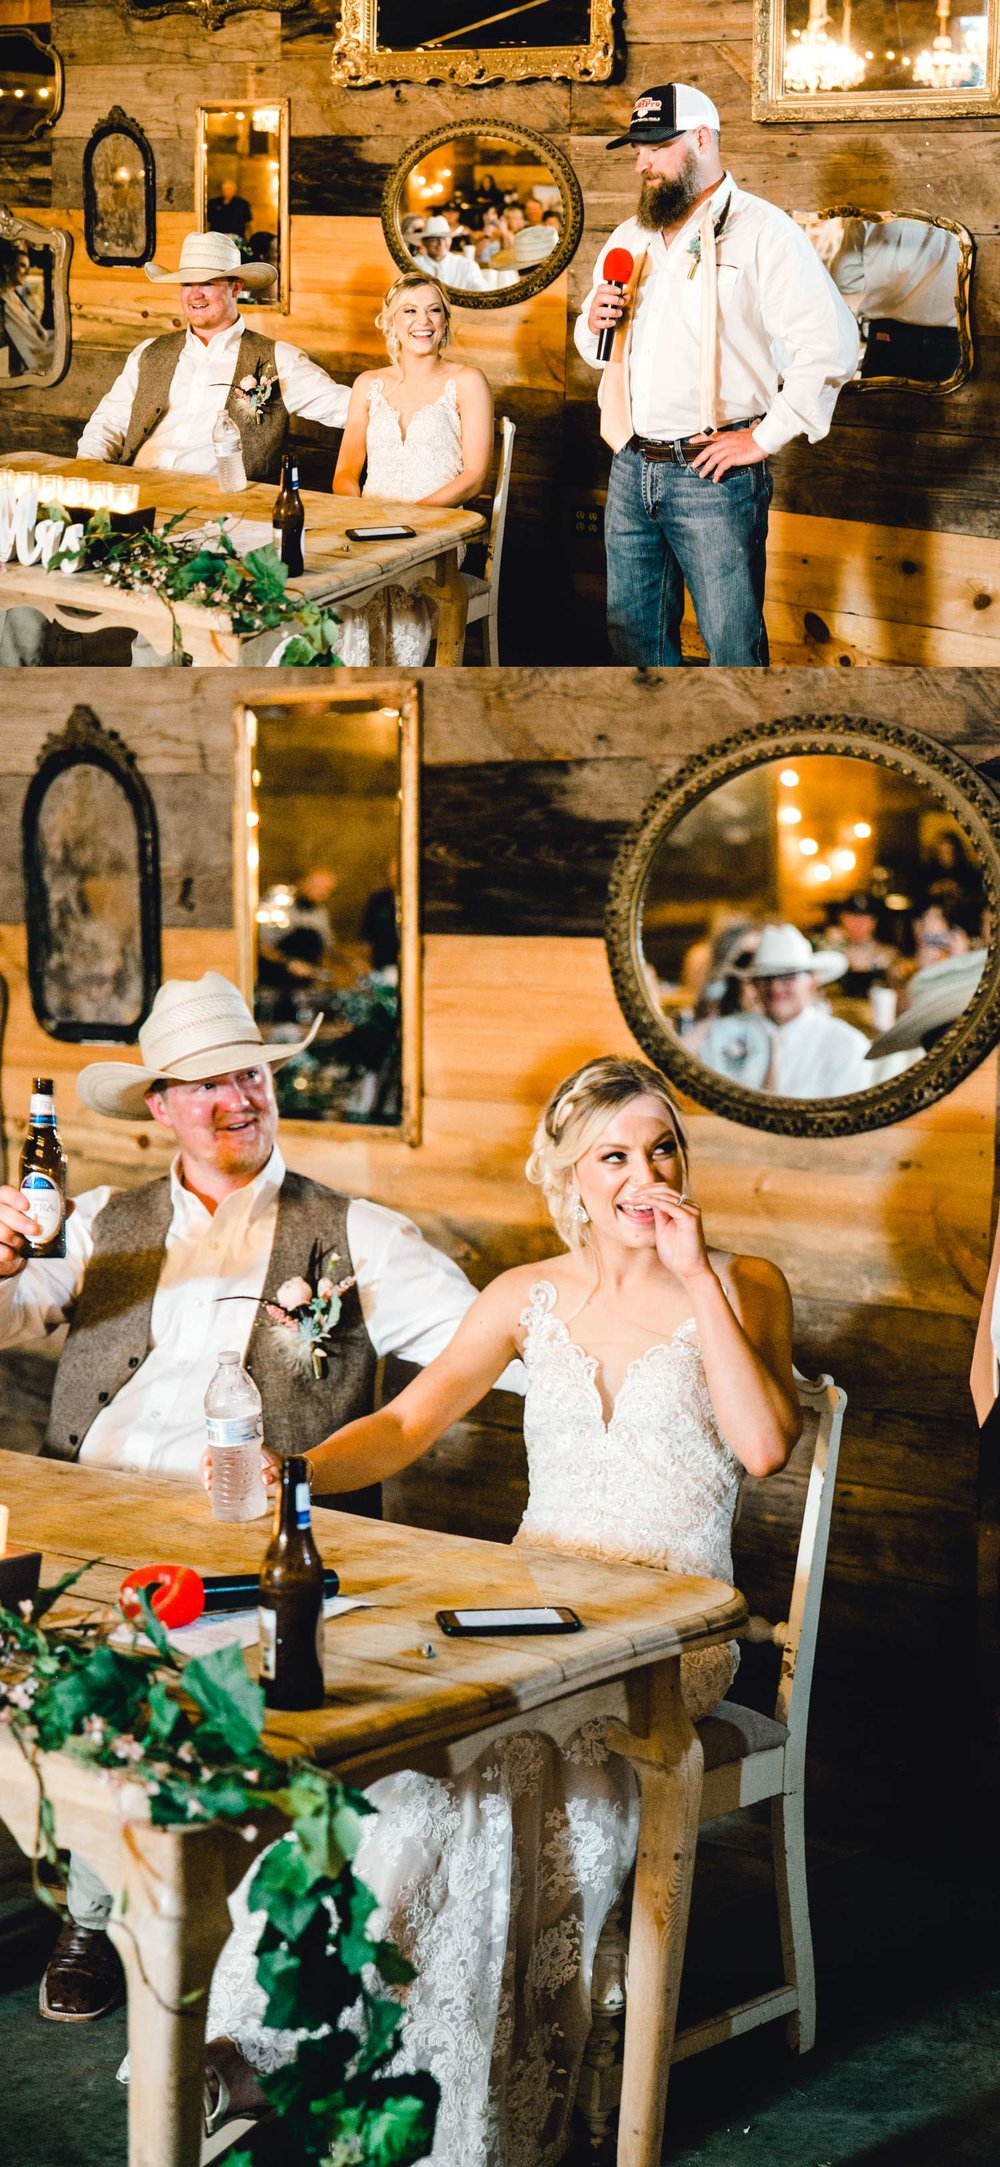 SARAH+TREVOR+BADGETT+SPARROW+CREEK+GRAHAM+TEXAS+ALLEEJ+WEDDINGS_0127.jpg